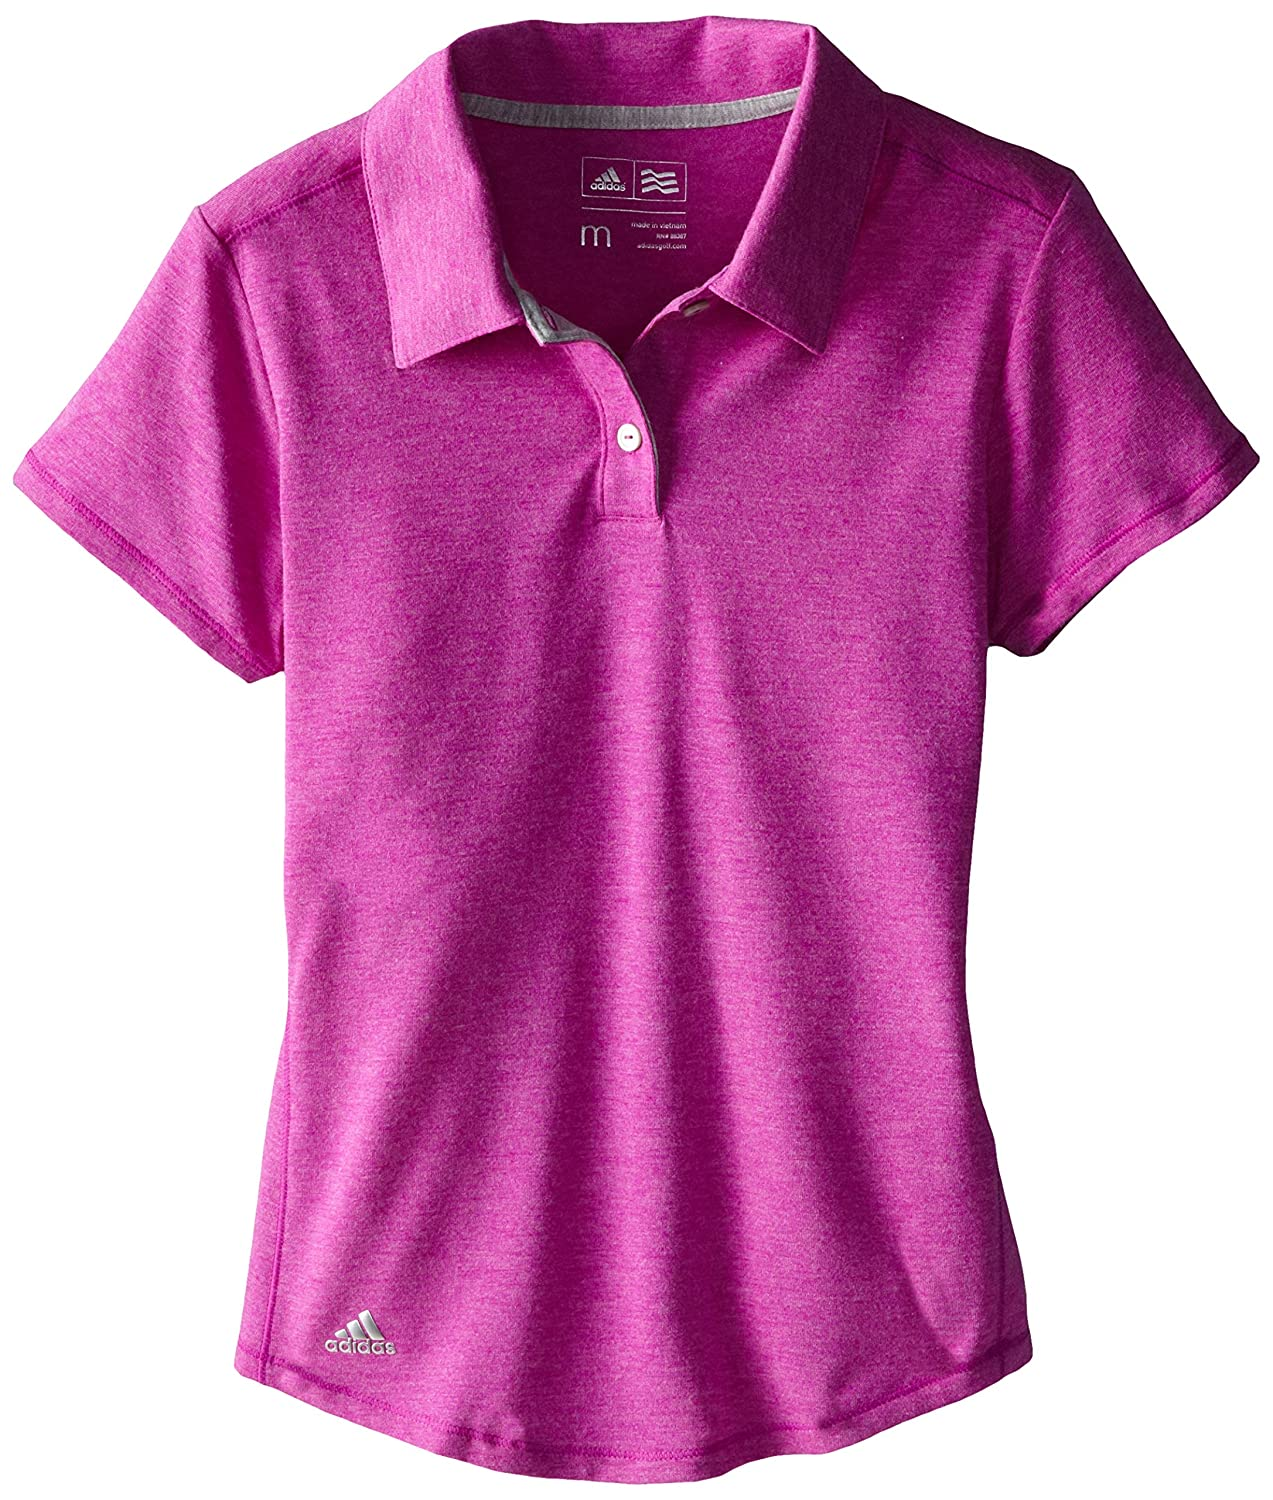 Girls' Short Sleeve Polo